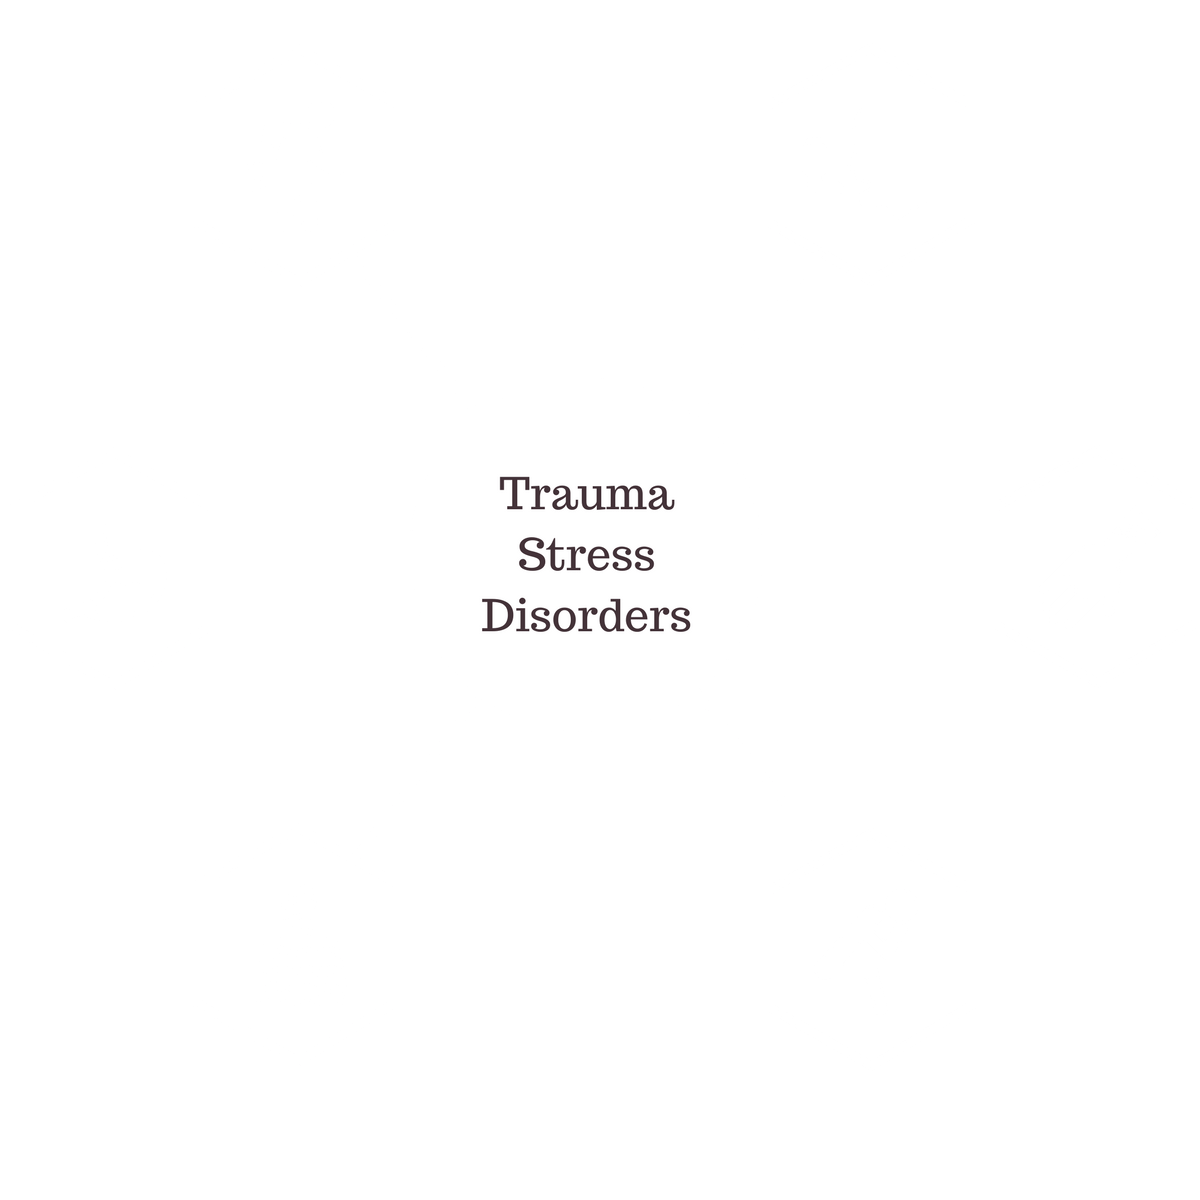 Trauma Stress Disorders - TSR founded by Dr. Ramirez who runs The Chiren Therapy Centre